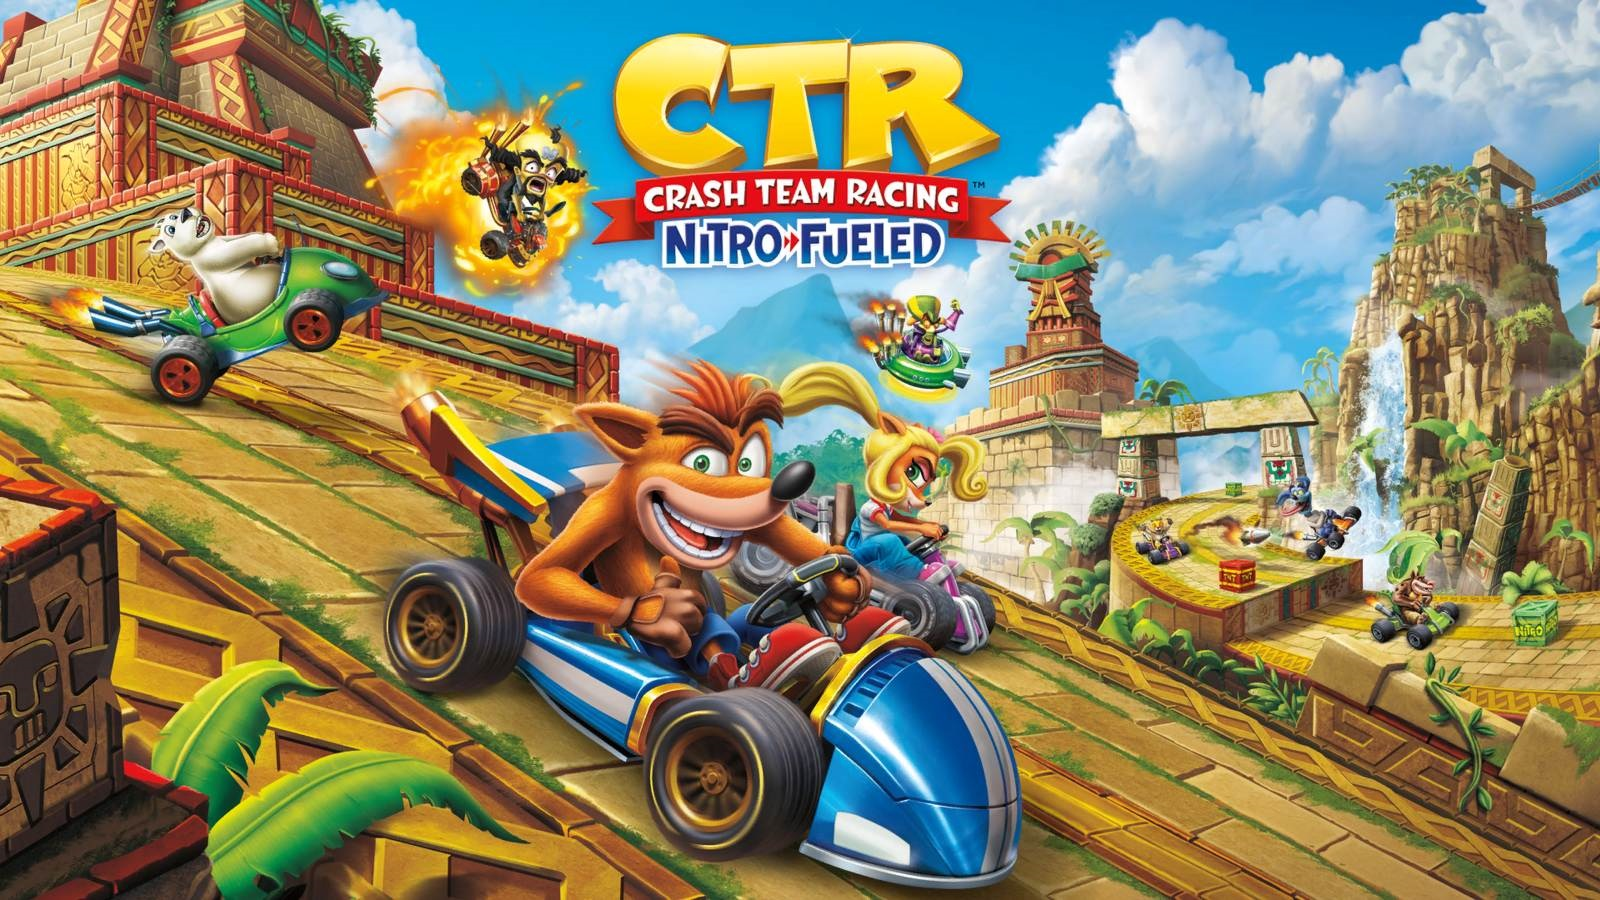 Crash Team Racing Nitro-Fueled; wallpaper: cover